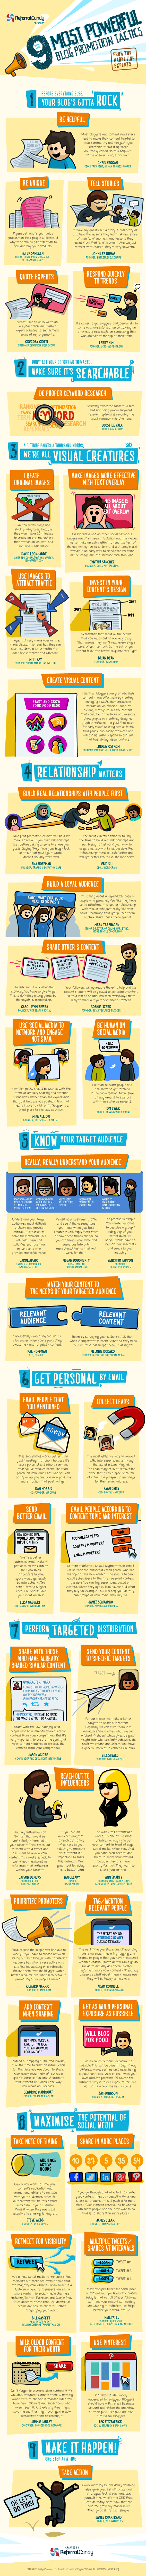 Blog Marketing: 9 Most Powerful Blog Promotion Tactics [Infographic]